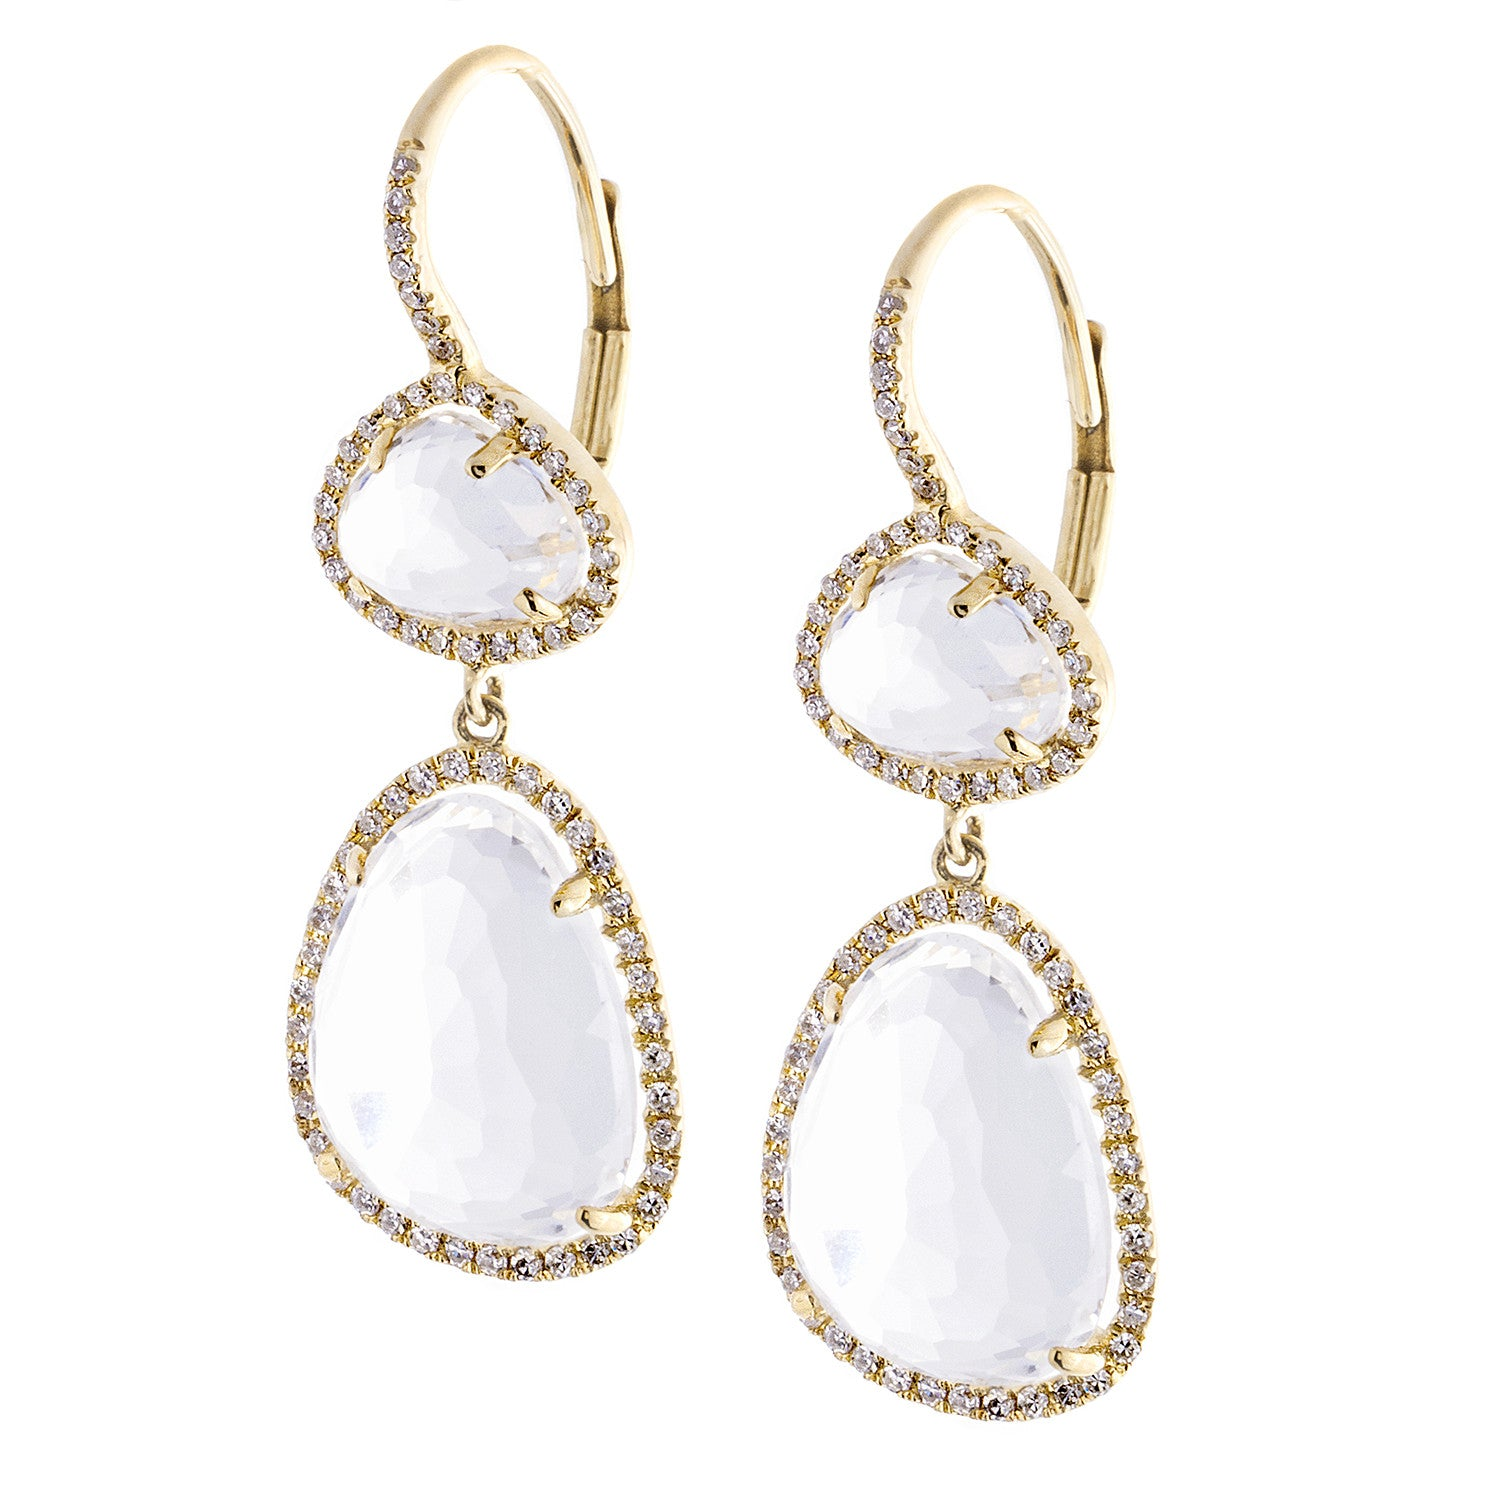 White Topaz, Diamond & 14K Yellow Gold Double Drop Earrings